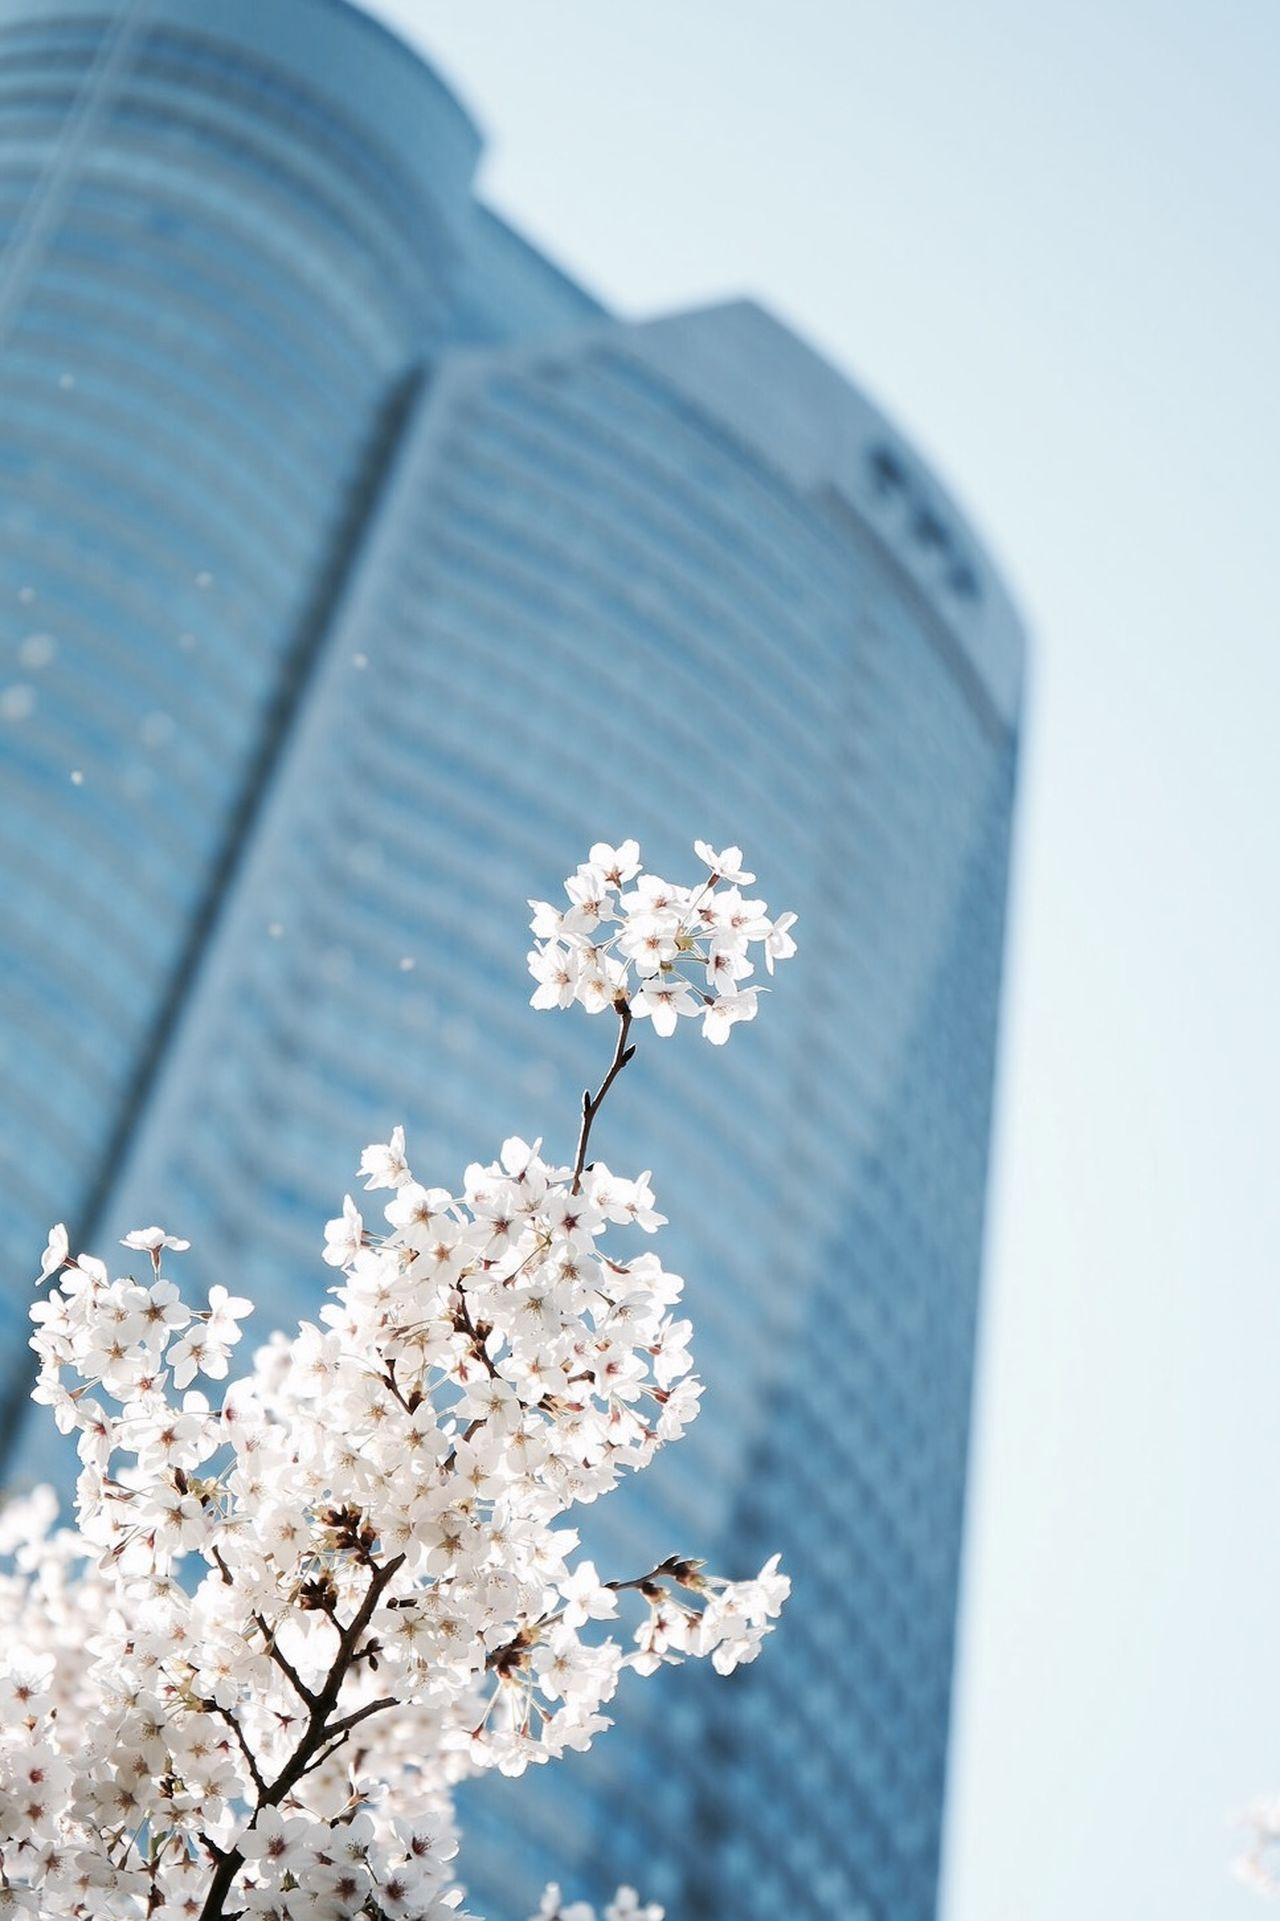 Blooming in Roppongi, Japan. Taking Photos Beautiful Tokyo Cherry Blossoms EyeEm Nature Lover Flowers Architecture EyeEm Best Shots Japan Looking Into The Future 六本木ヒルズ 桜